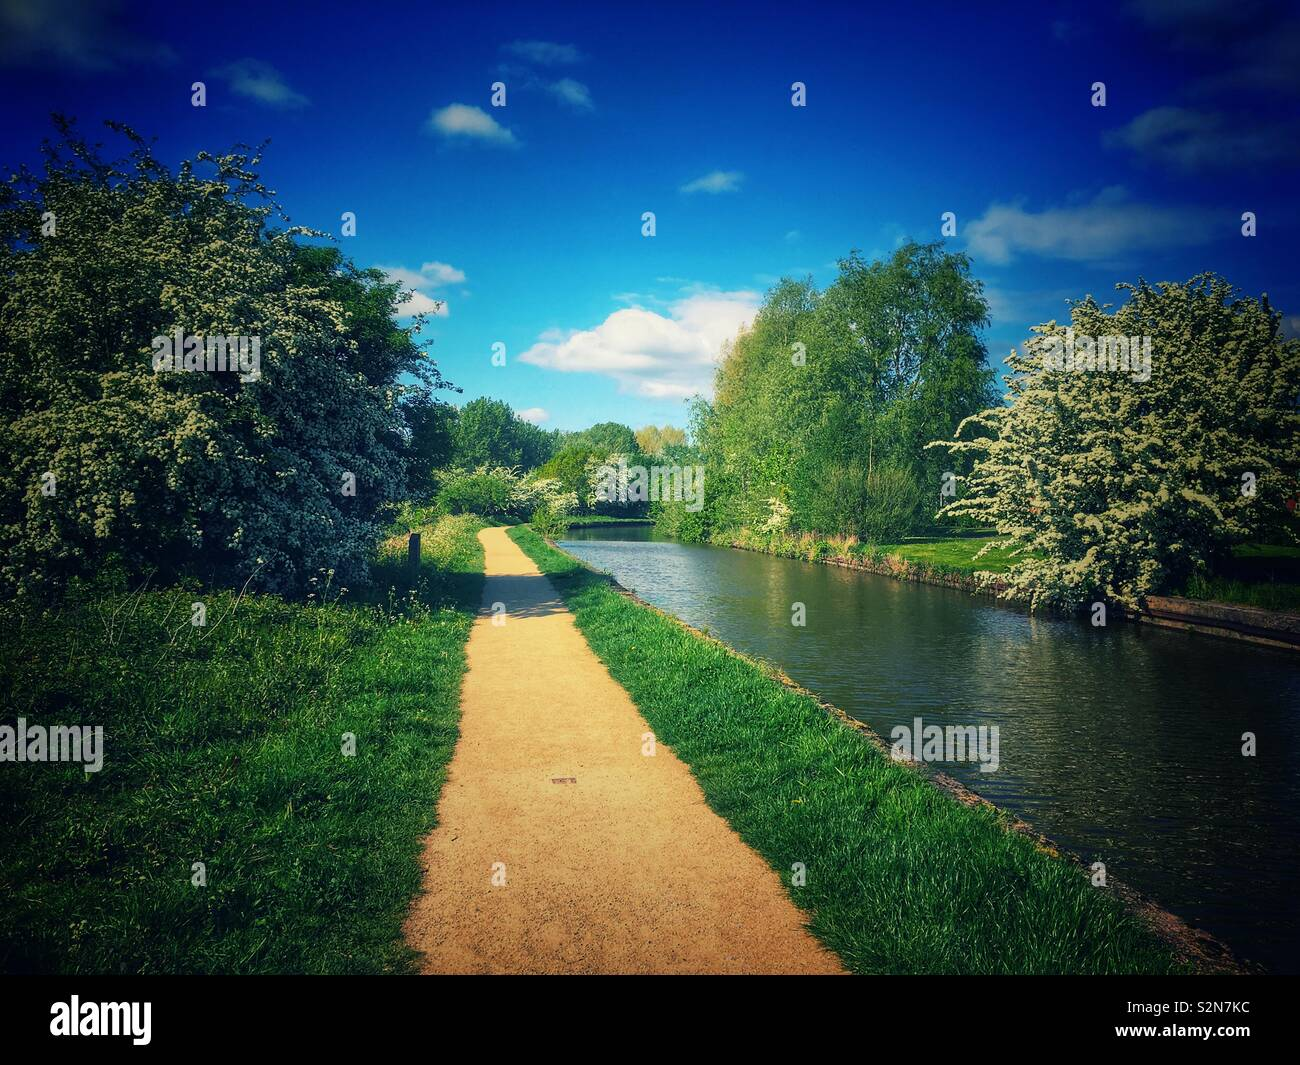 Trent and Mersey canal in Cheshire Uk - Stock Image